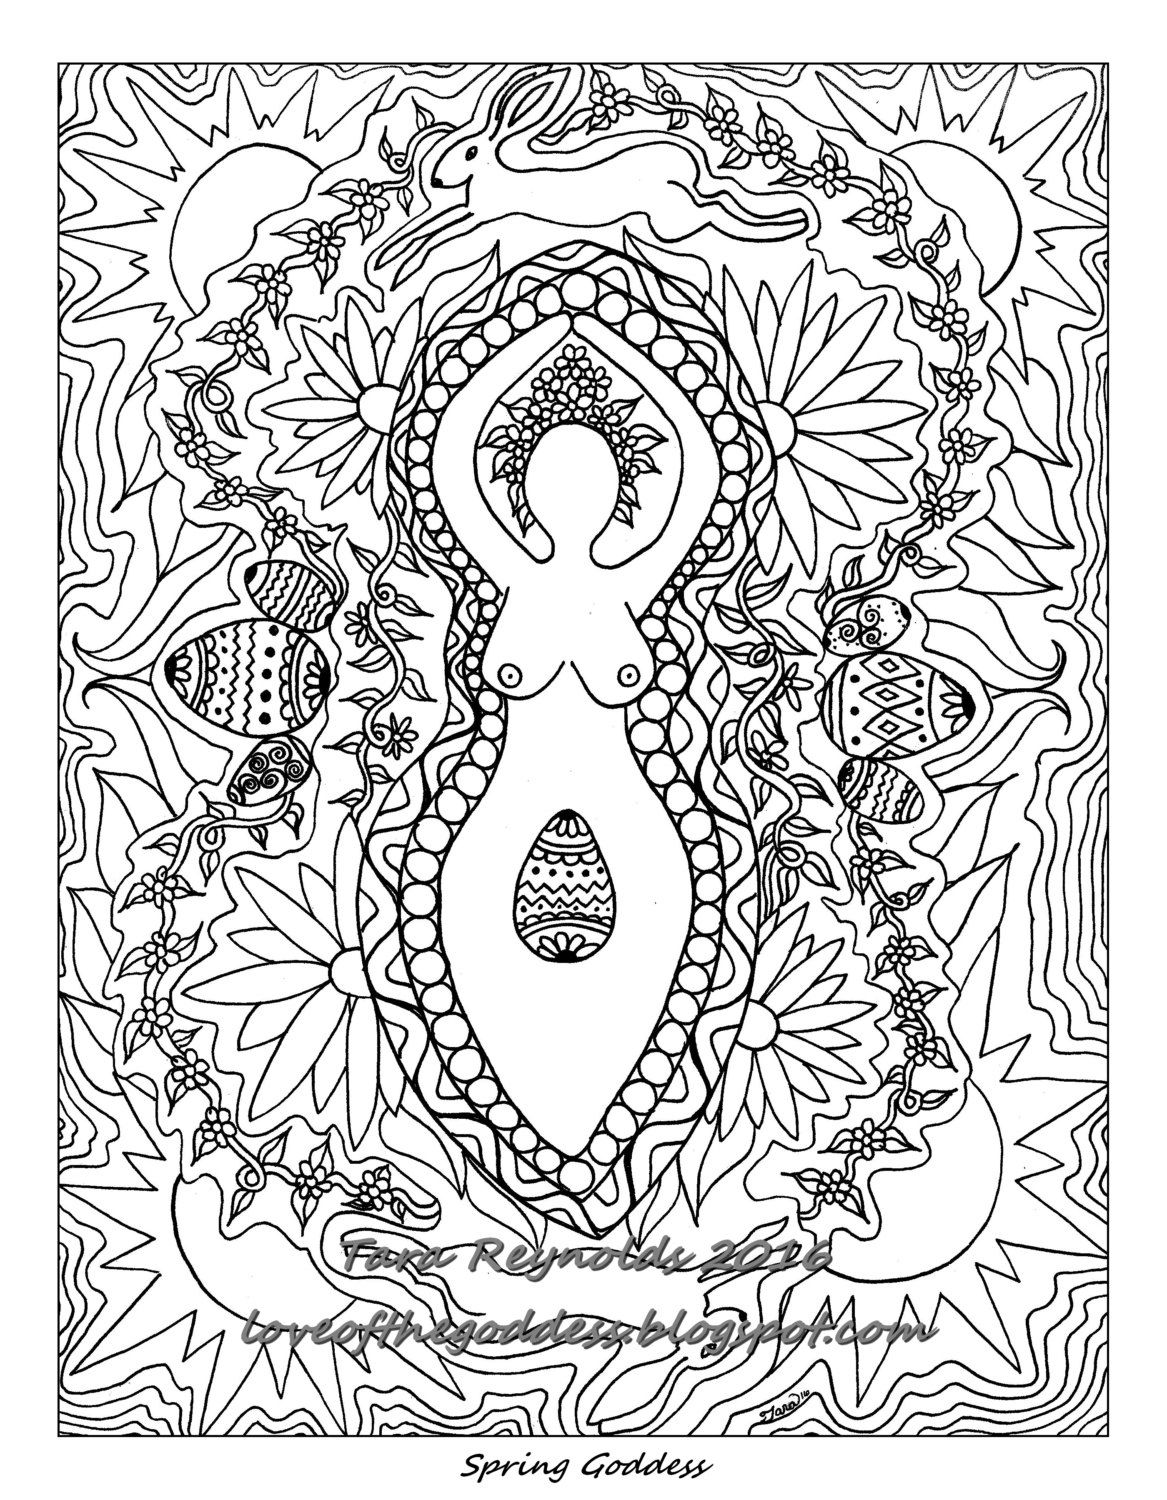 Coloring Book Page Printable Coloring Pages Ostara Sabbat Goddess ...